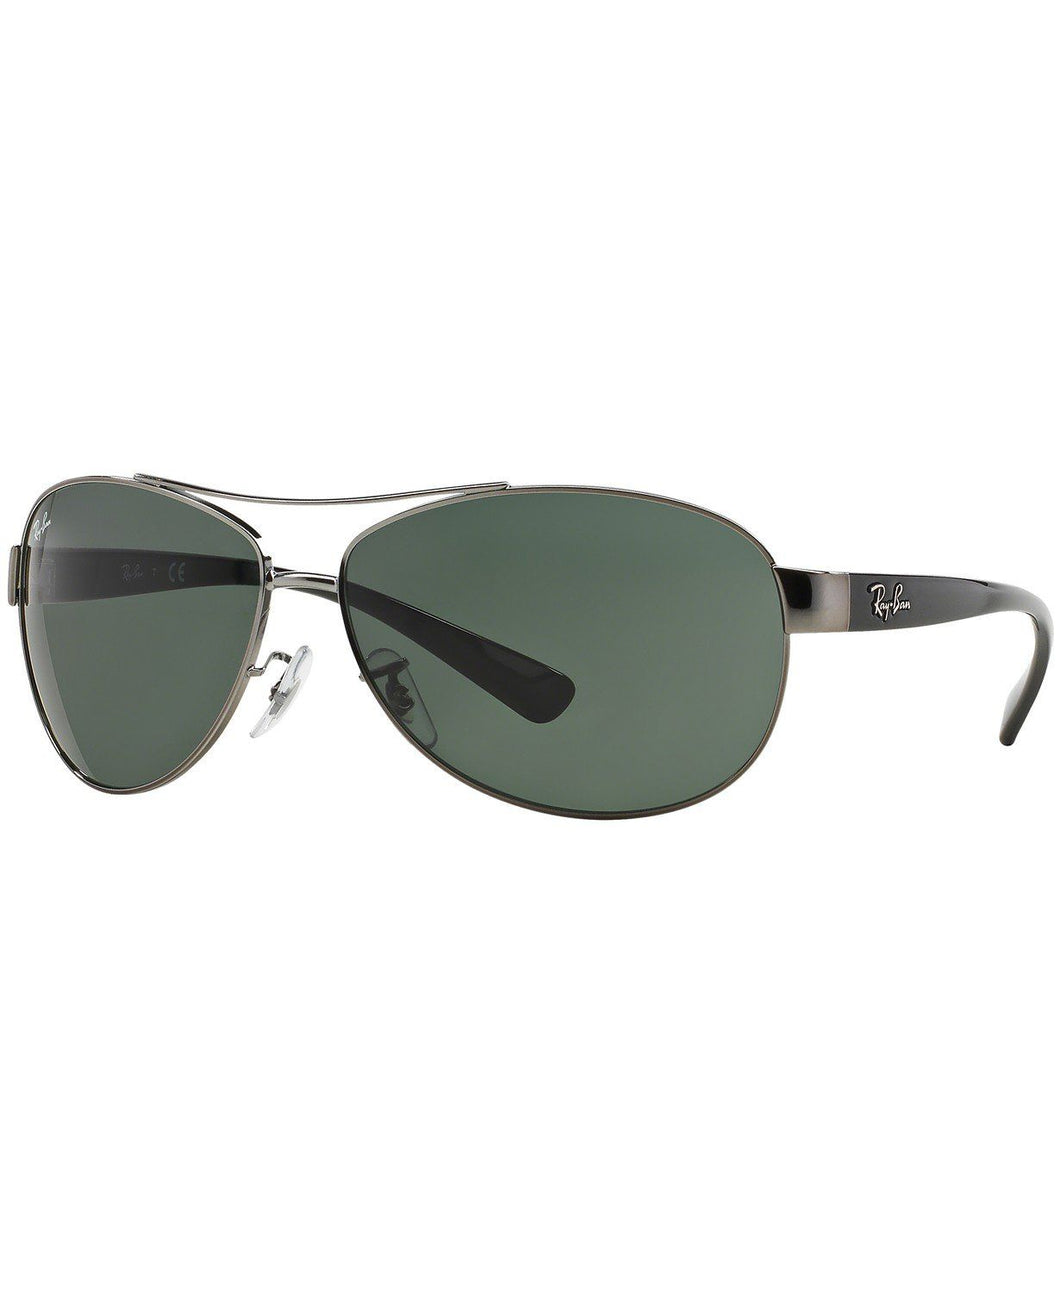 Ray Ban Unisex Pilot Gunmetal Sunglasses 3386-0047/71 63mm - Watchbatteries